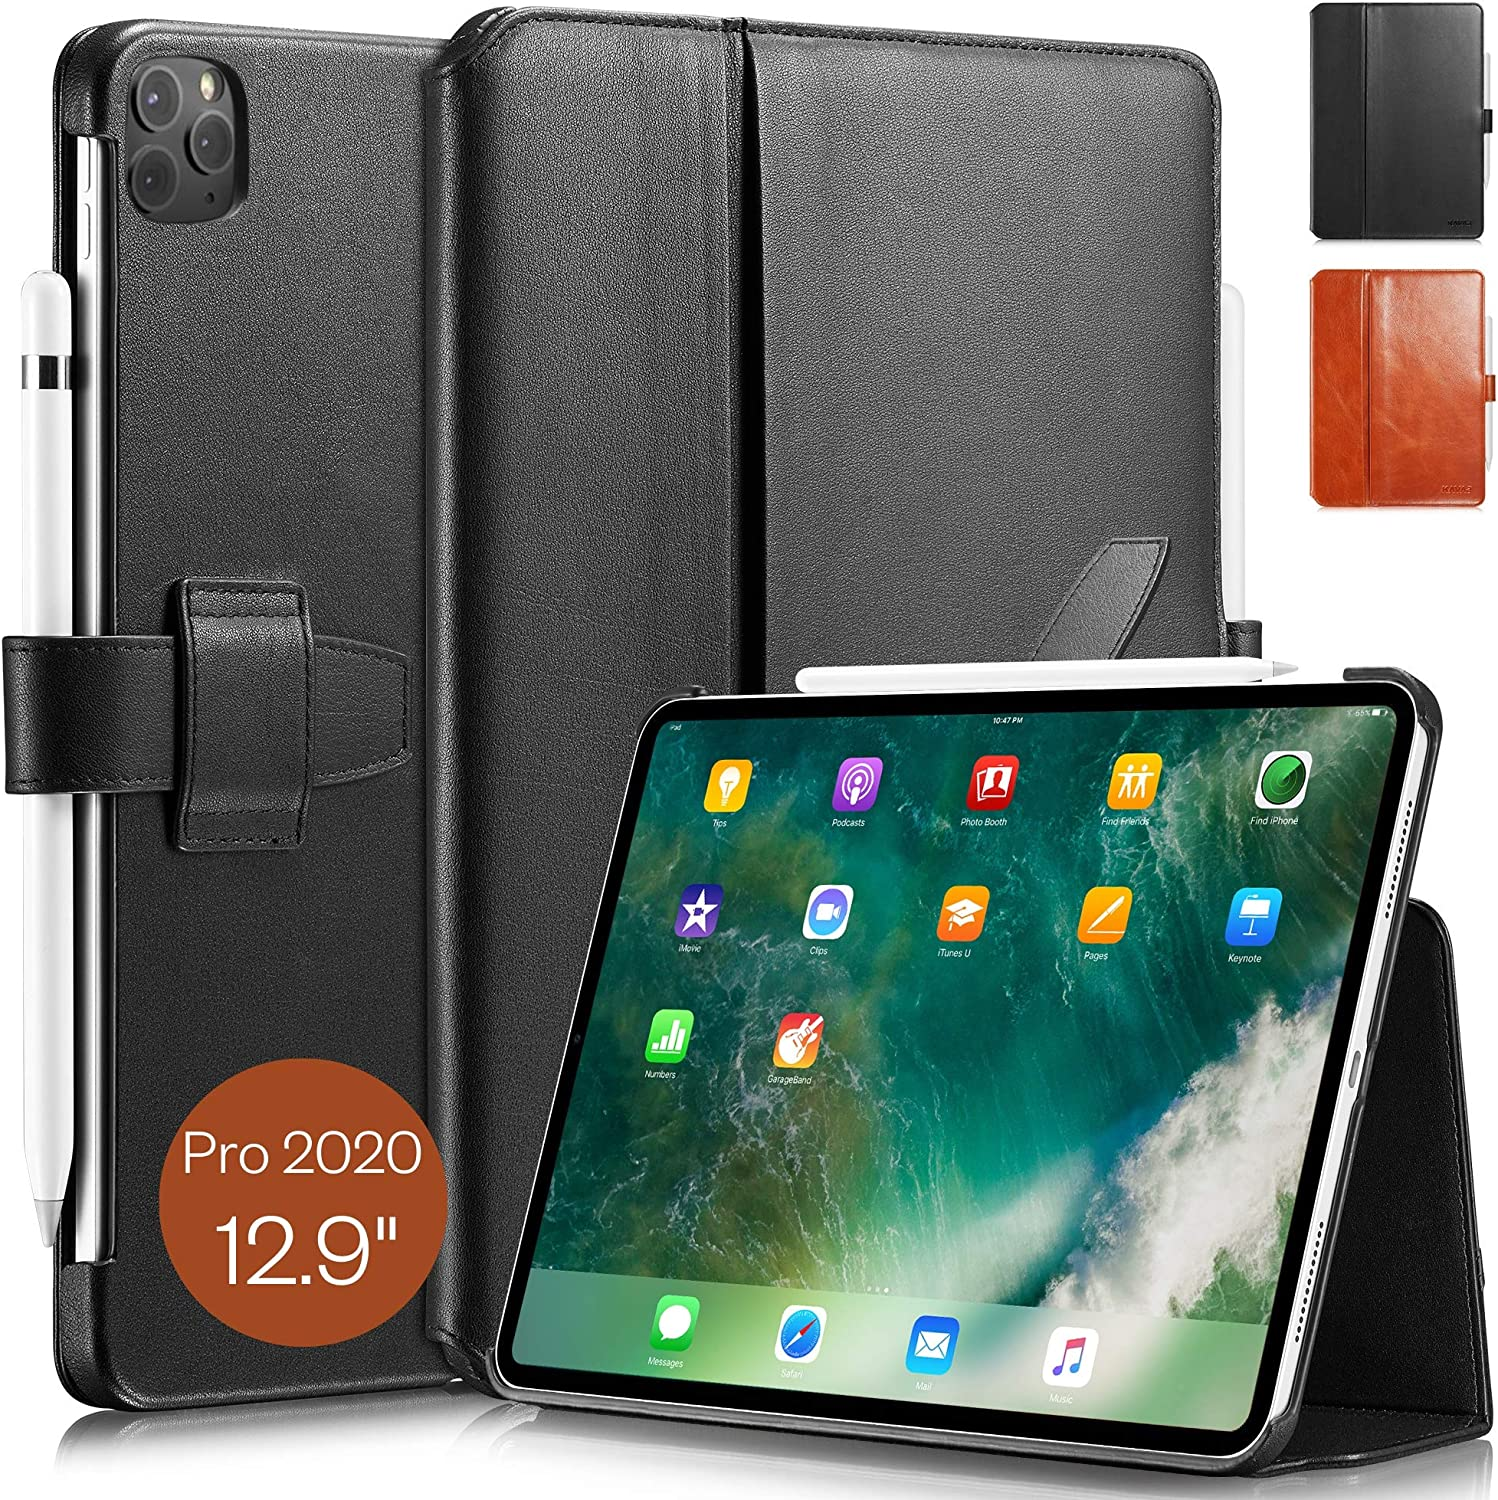 """KAVAJ Case Leather Cover London Works with Apple iPad Pro 12.9"""" 2020 Black Genuine Cowhide Leather with Pencil Holder Supports Apple Pencil Slim Fit Smart Folio"""